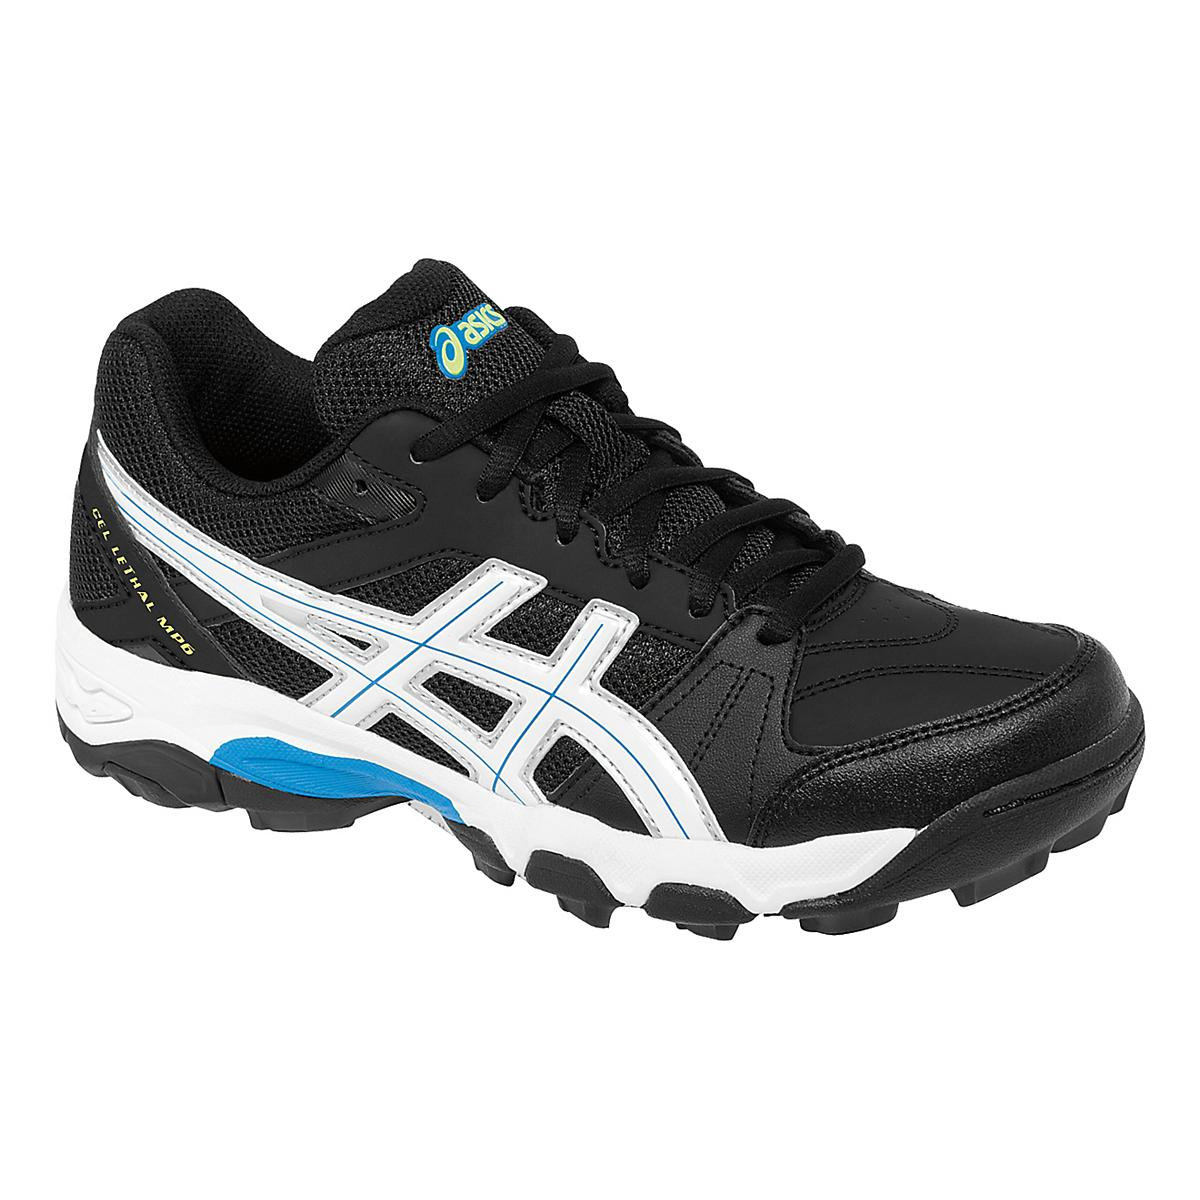 168d8ec6a59d Womens ASICS GEL-Lethal MP6 Track and Field Shoe at Road Runner Sports